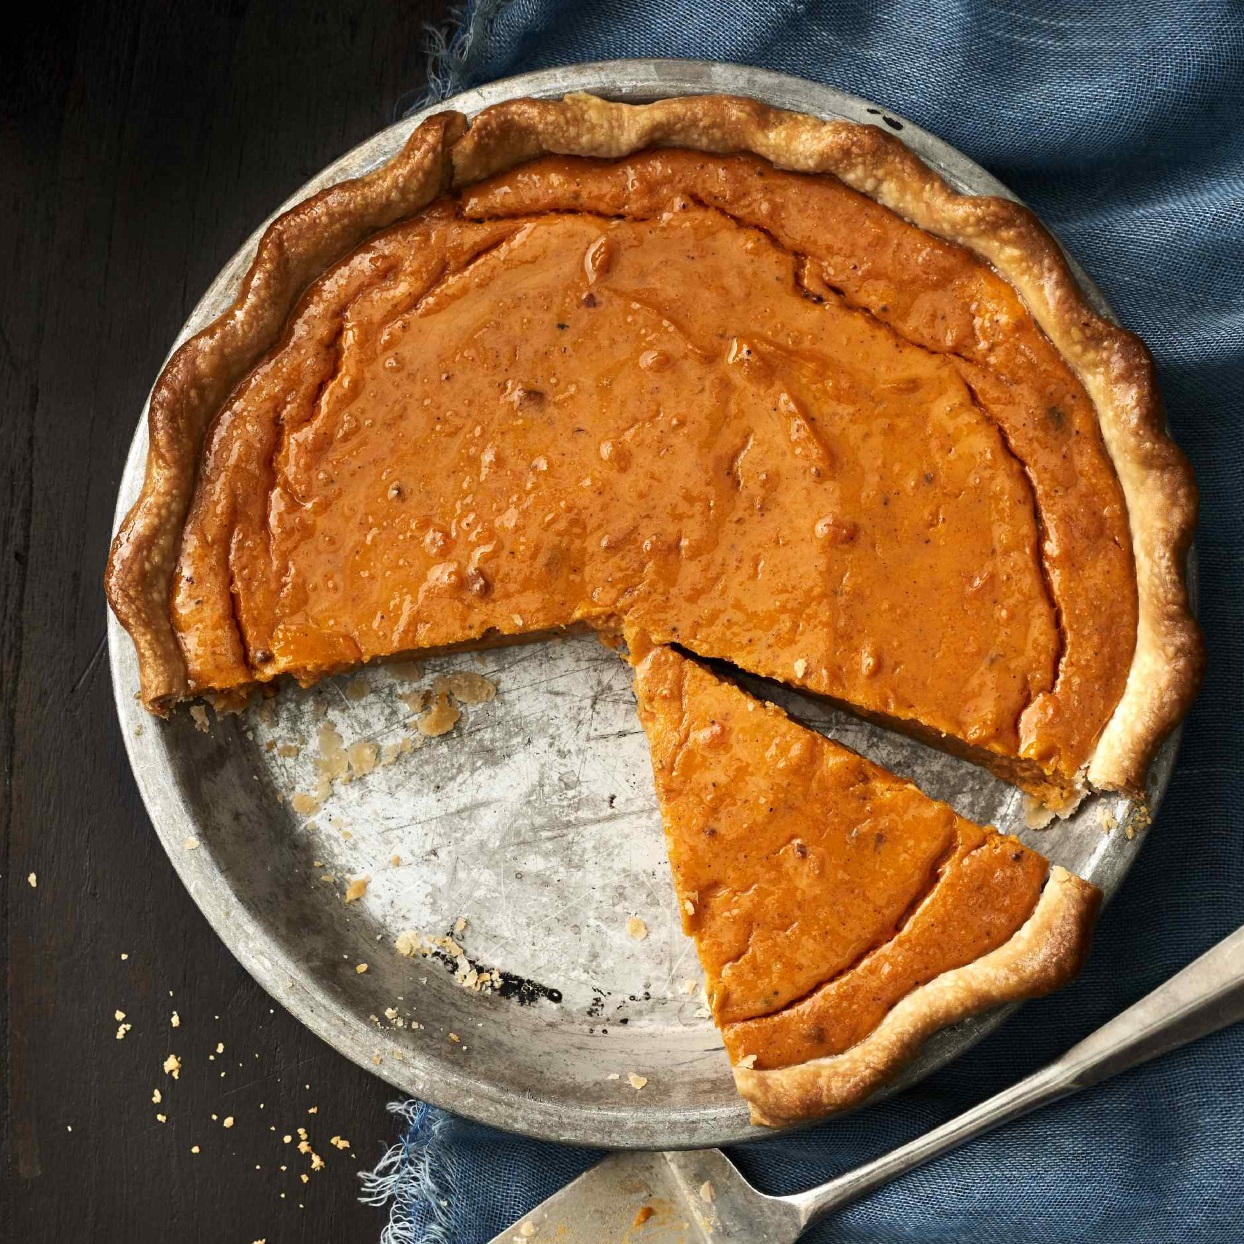 Rose's Sweet Potato Pie Allrecipes Trusted Brands